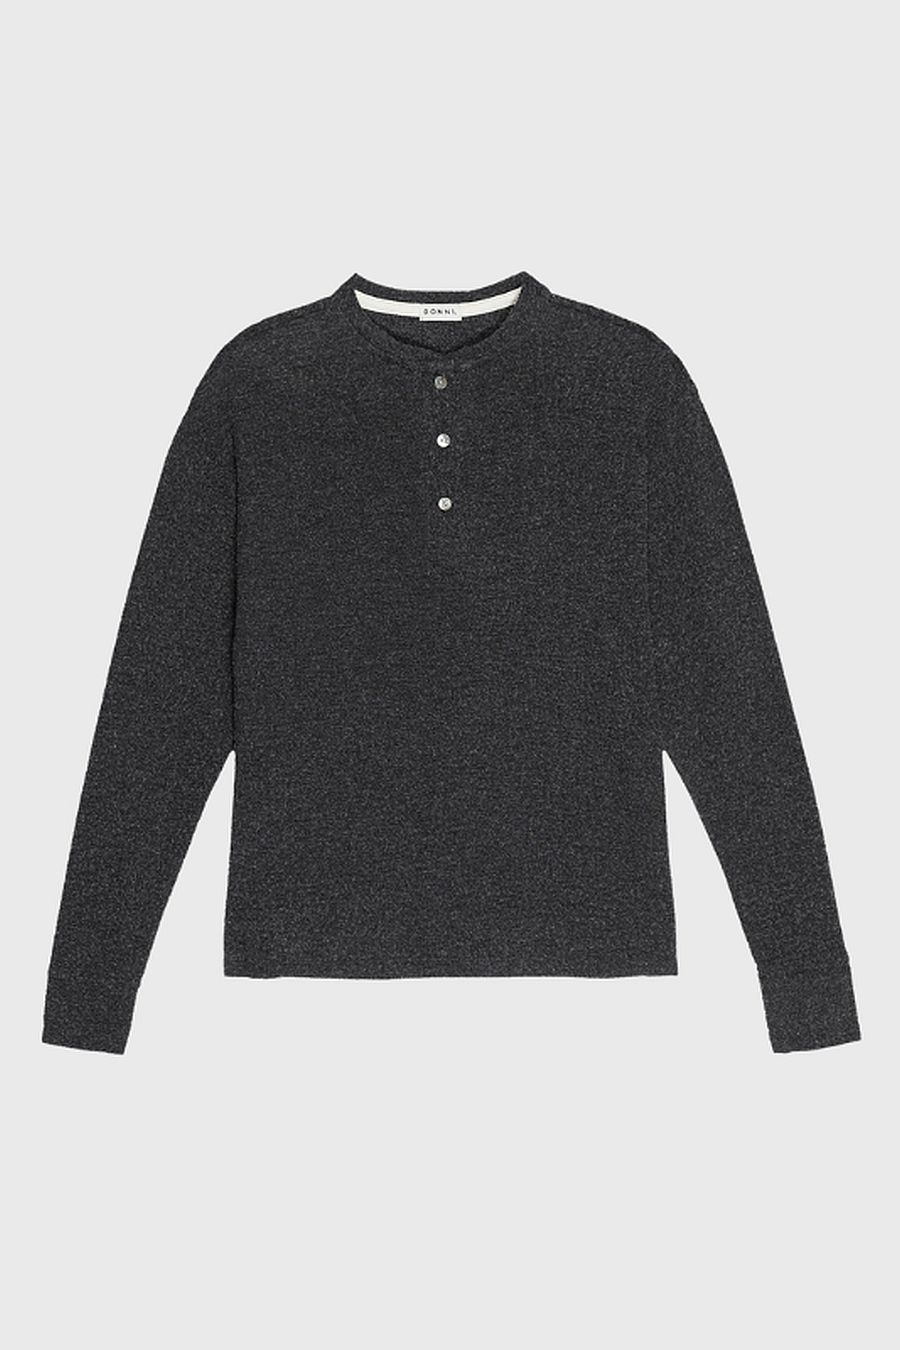 DONNI. Sweater Henley - Jet